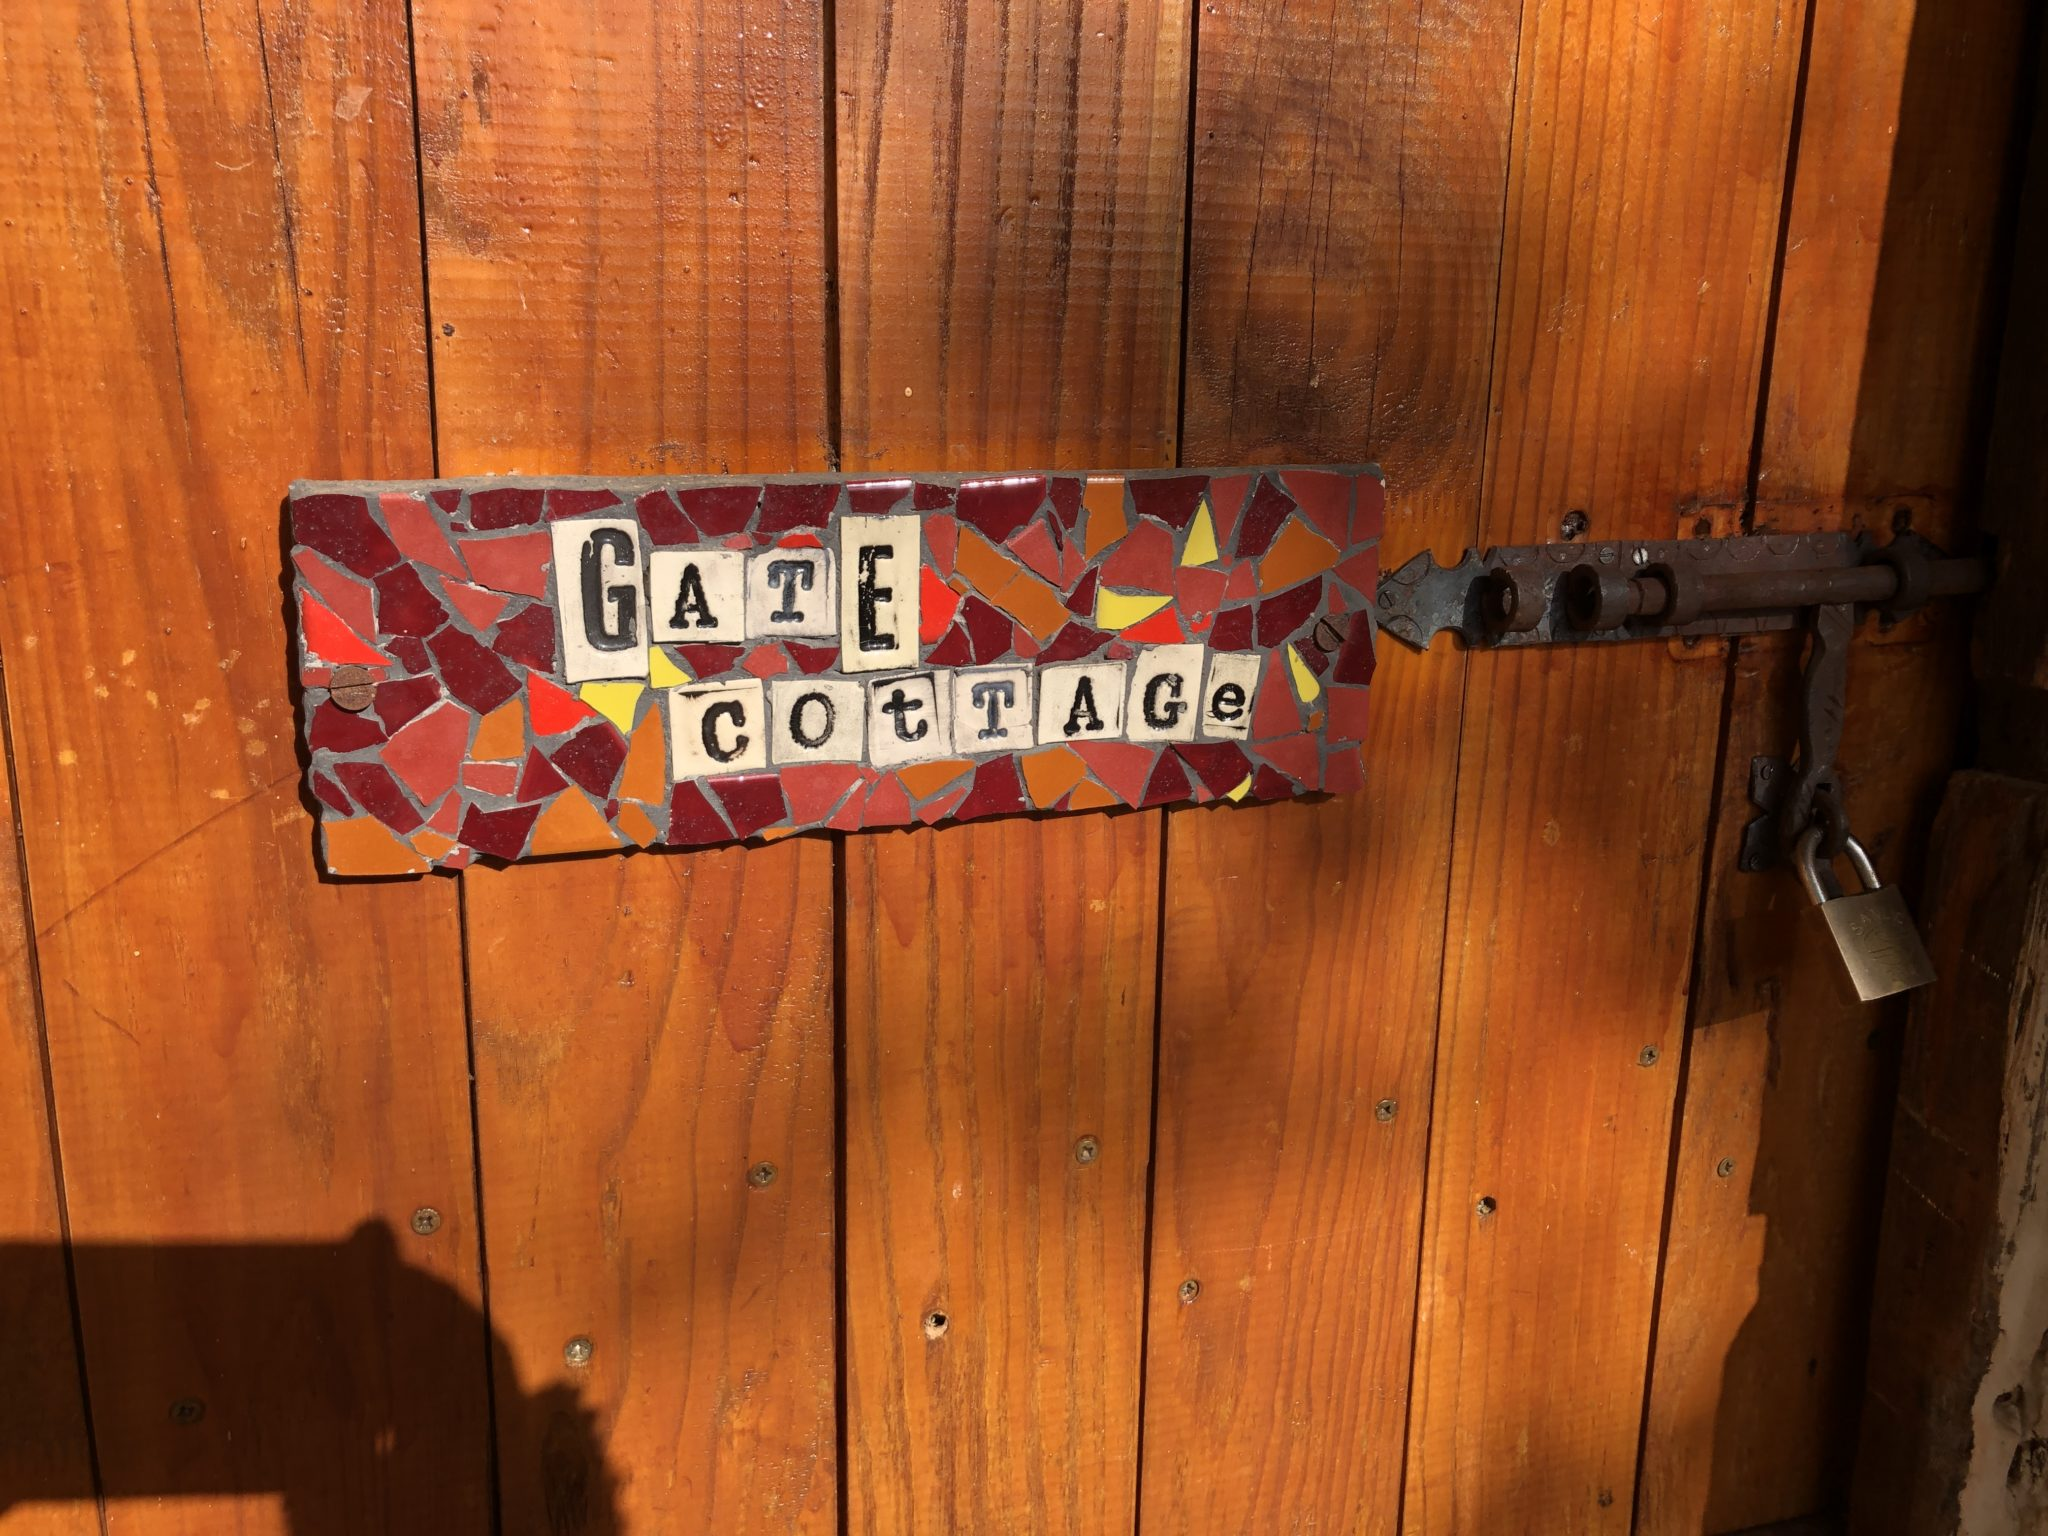 Front Door of the Gate Cottage